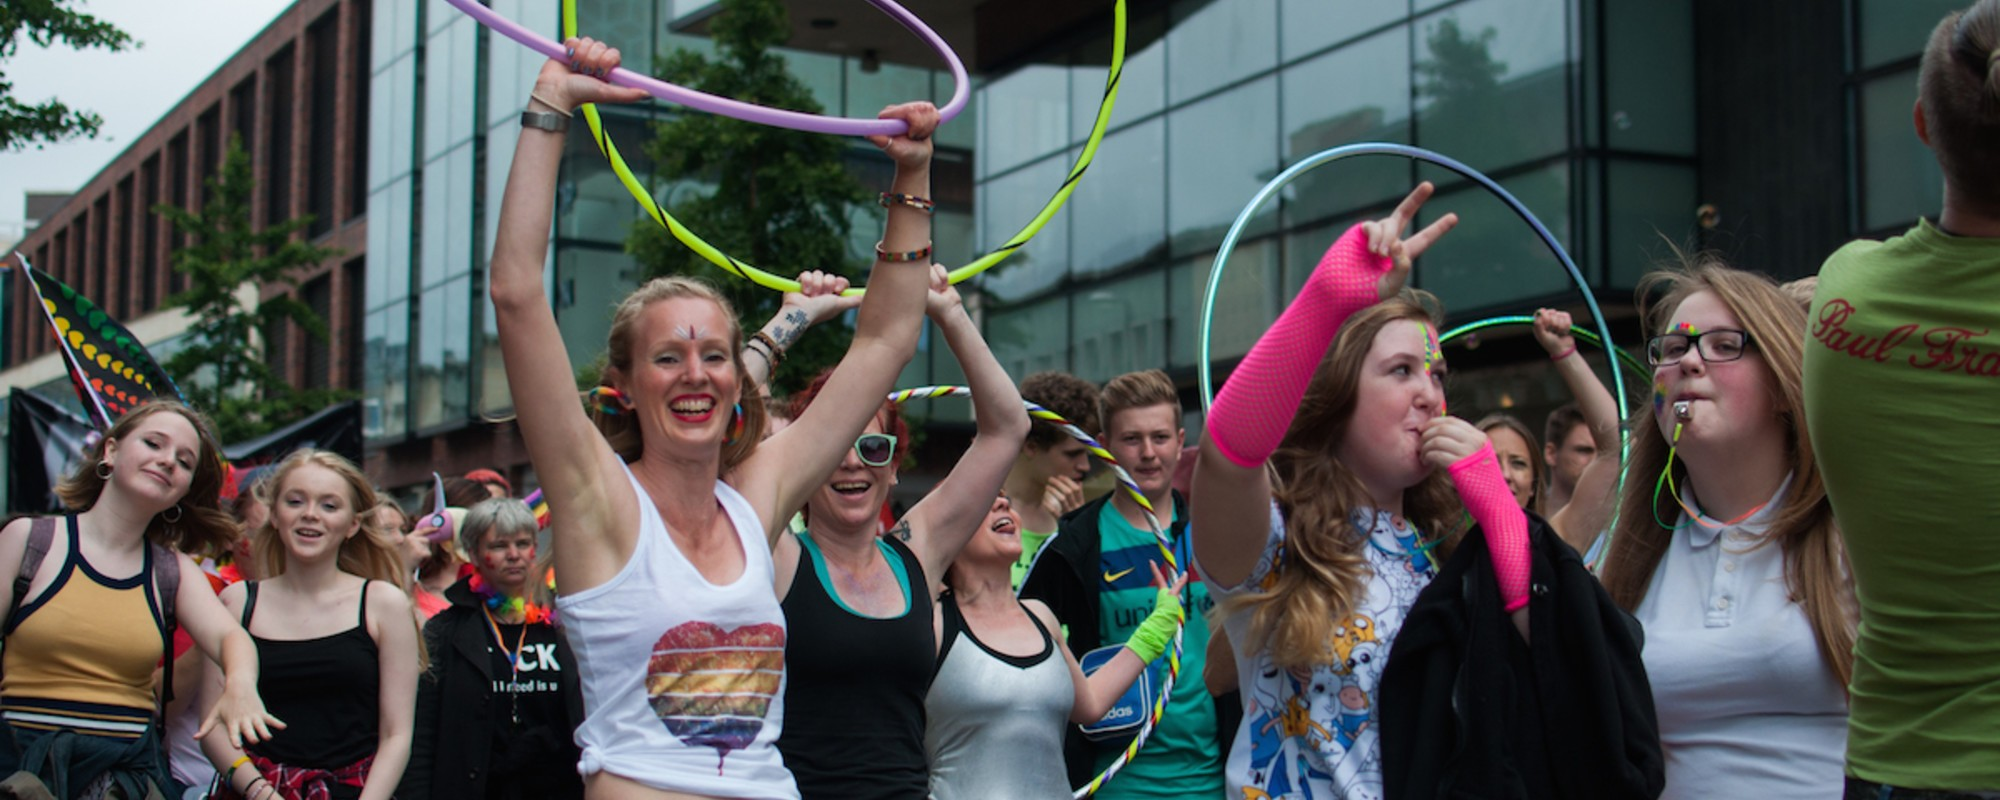 The Grins, Feather Boas and Fetish Leather of Bristol's Pride Parade